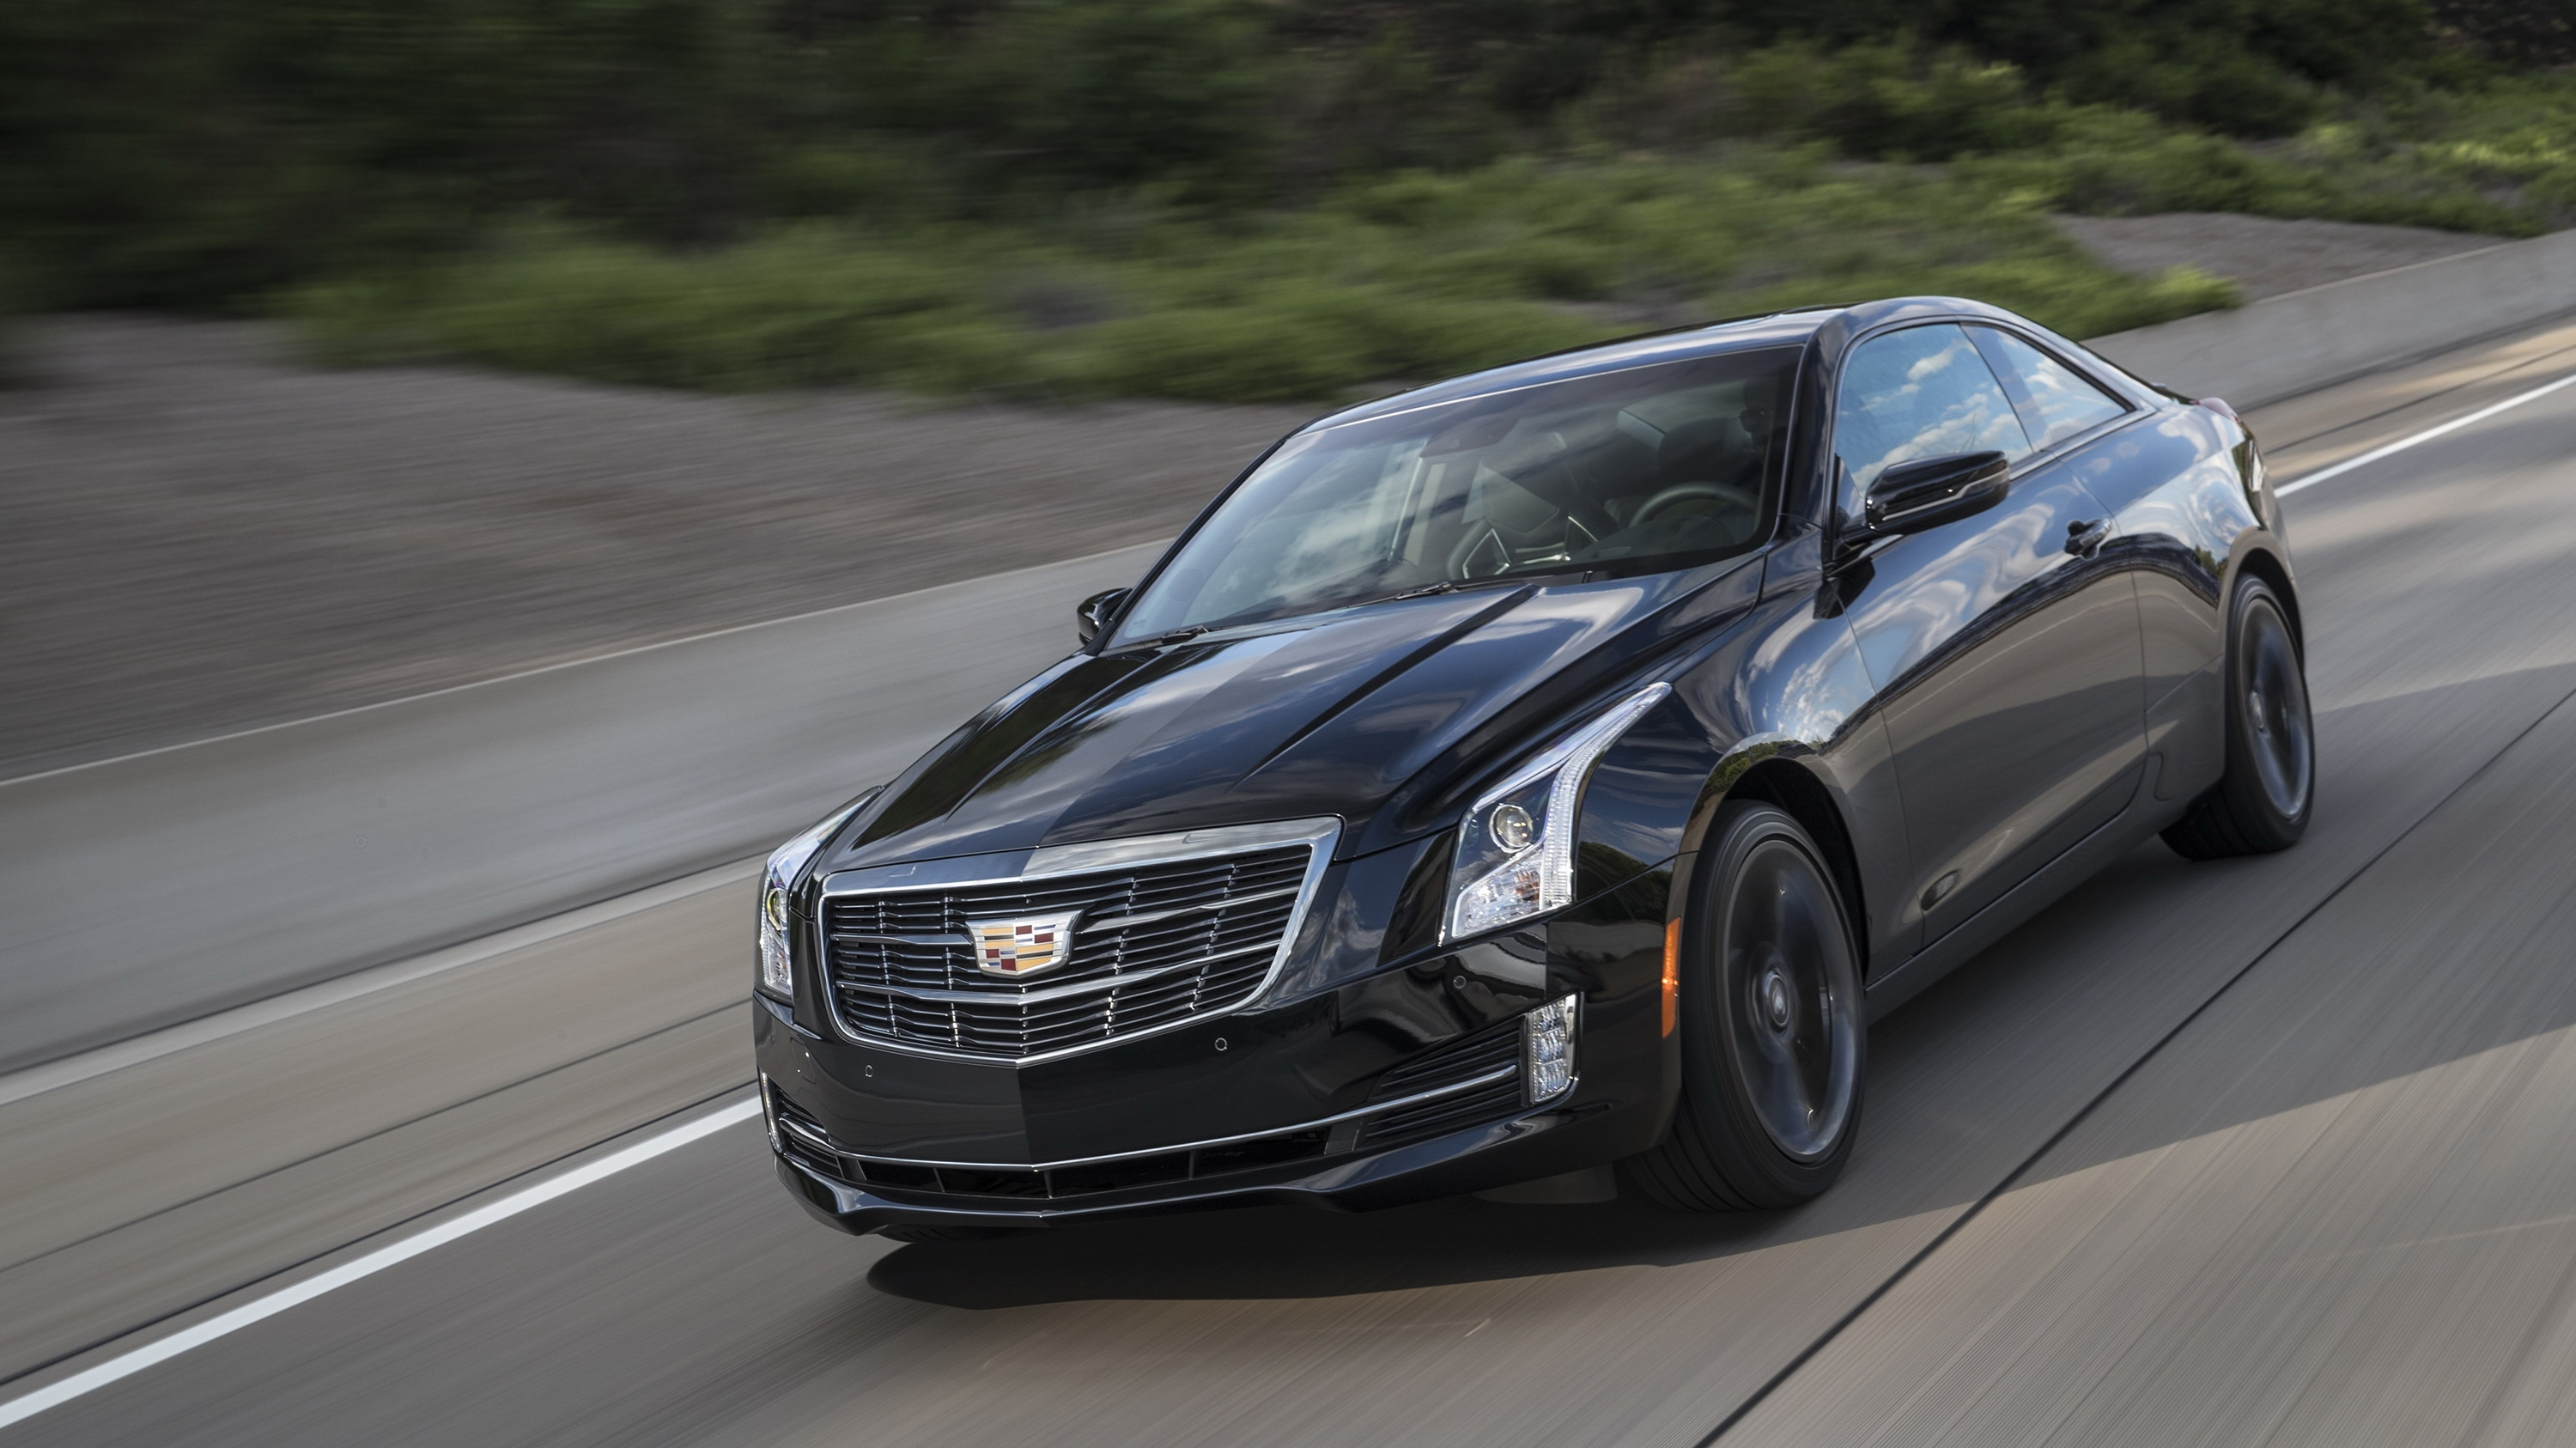 2017 Cadillac Ats Coupe Carbon Black Sport Package Review